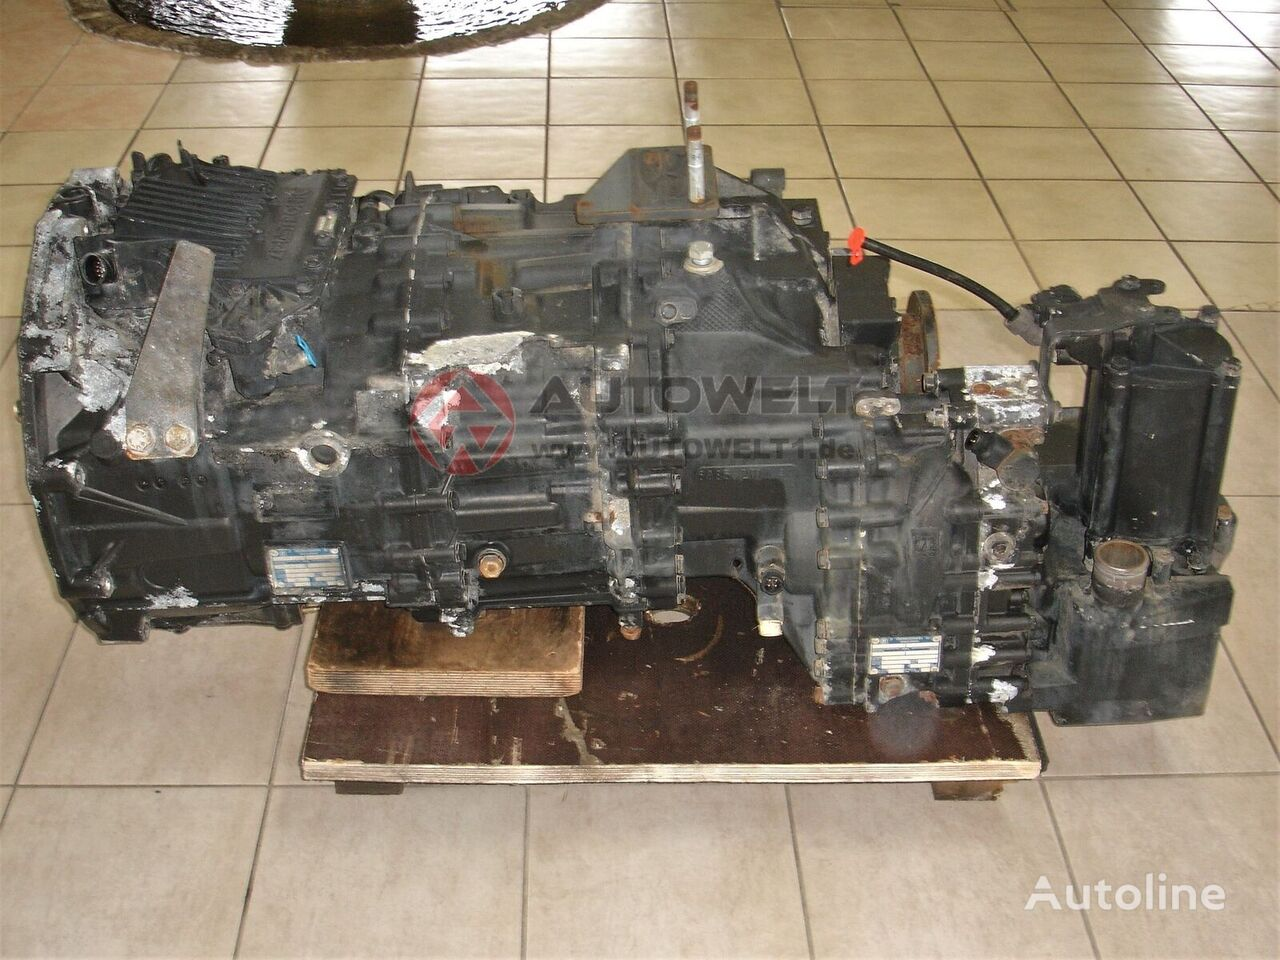 ZF 16AS2601 IT gearbox for RENAULT Magnum truck